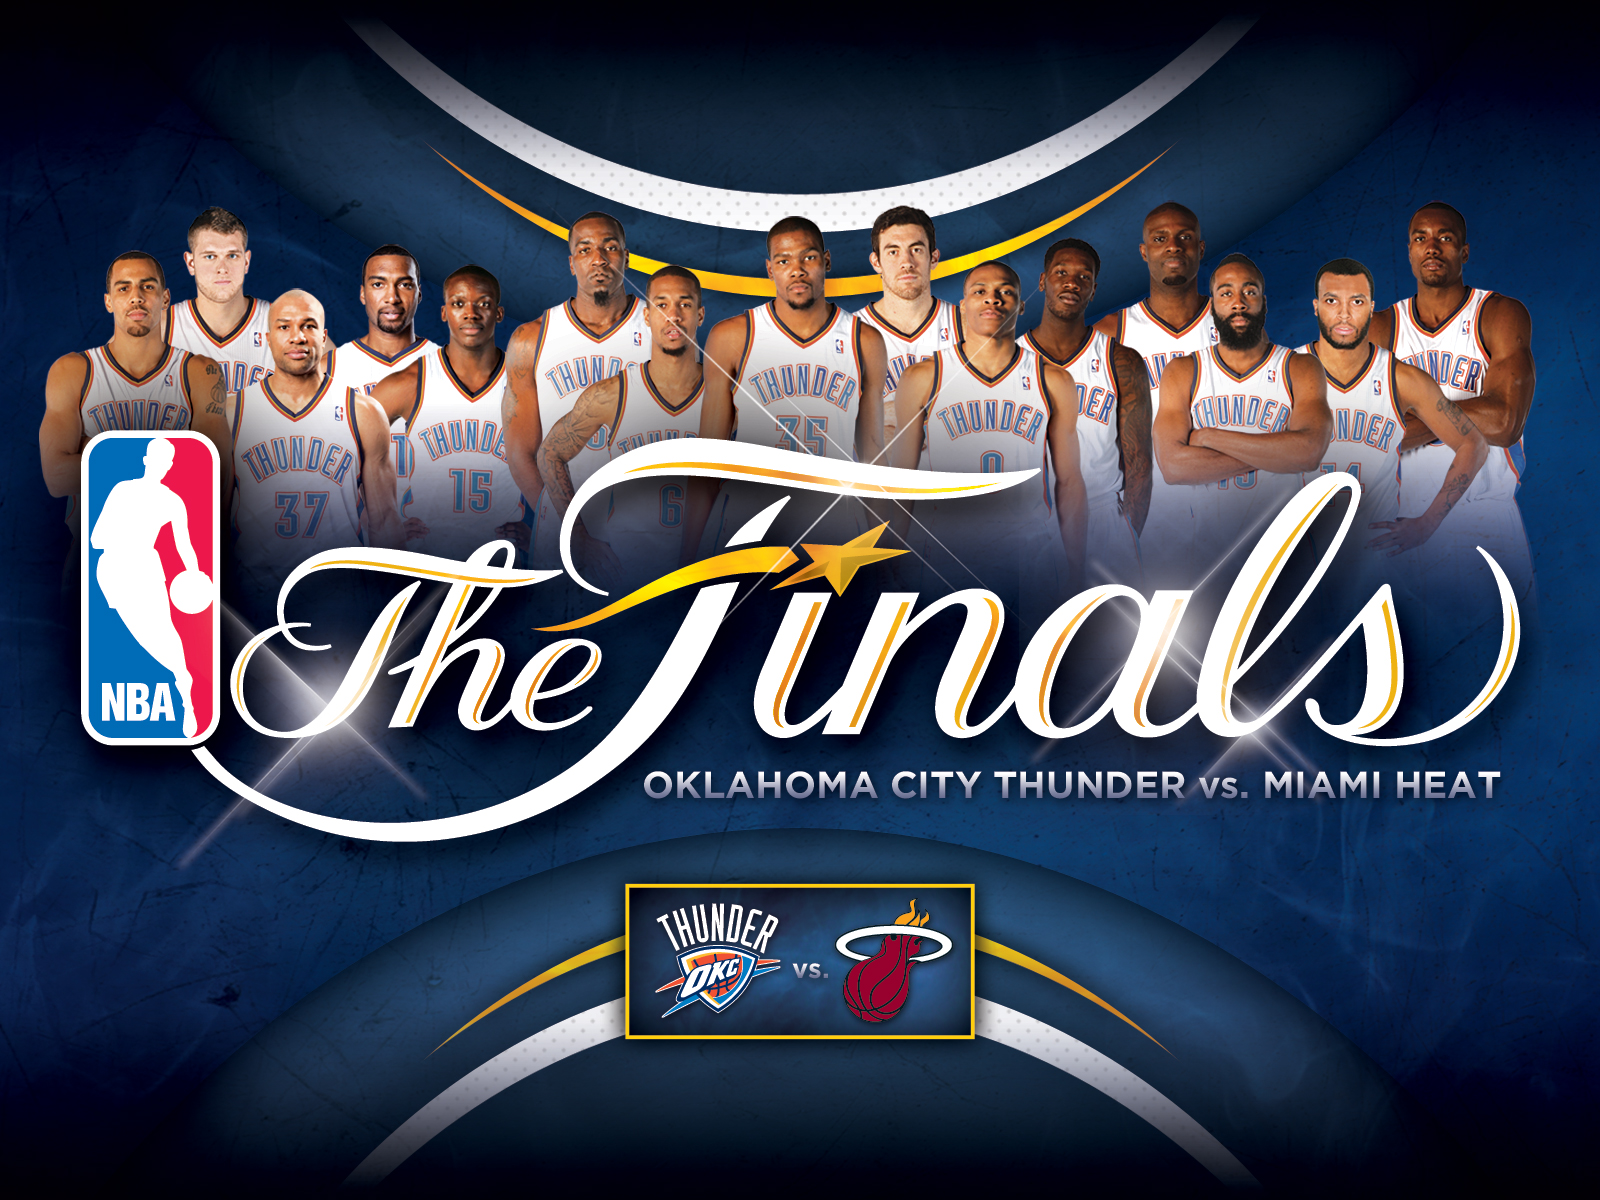 NBA Finals Downloads THE OFFICIAL SITE OF OKLAHOMA CITY THUNDER 1600x1200